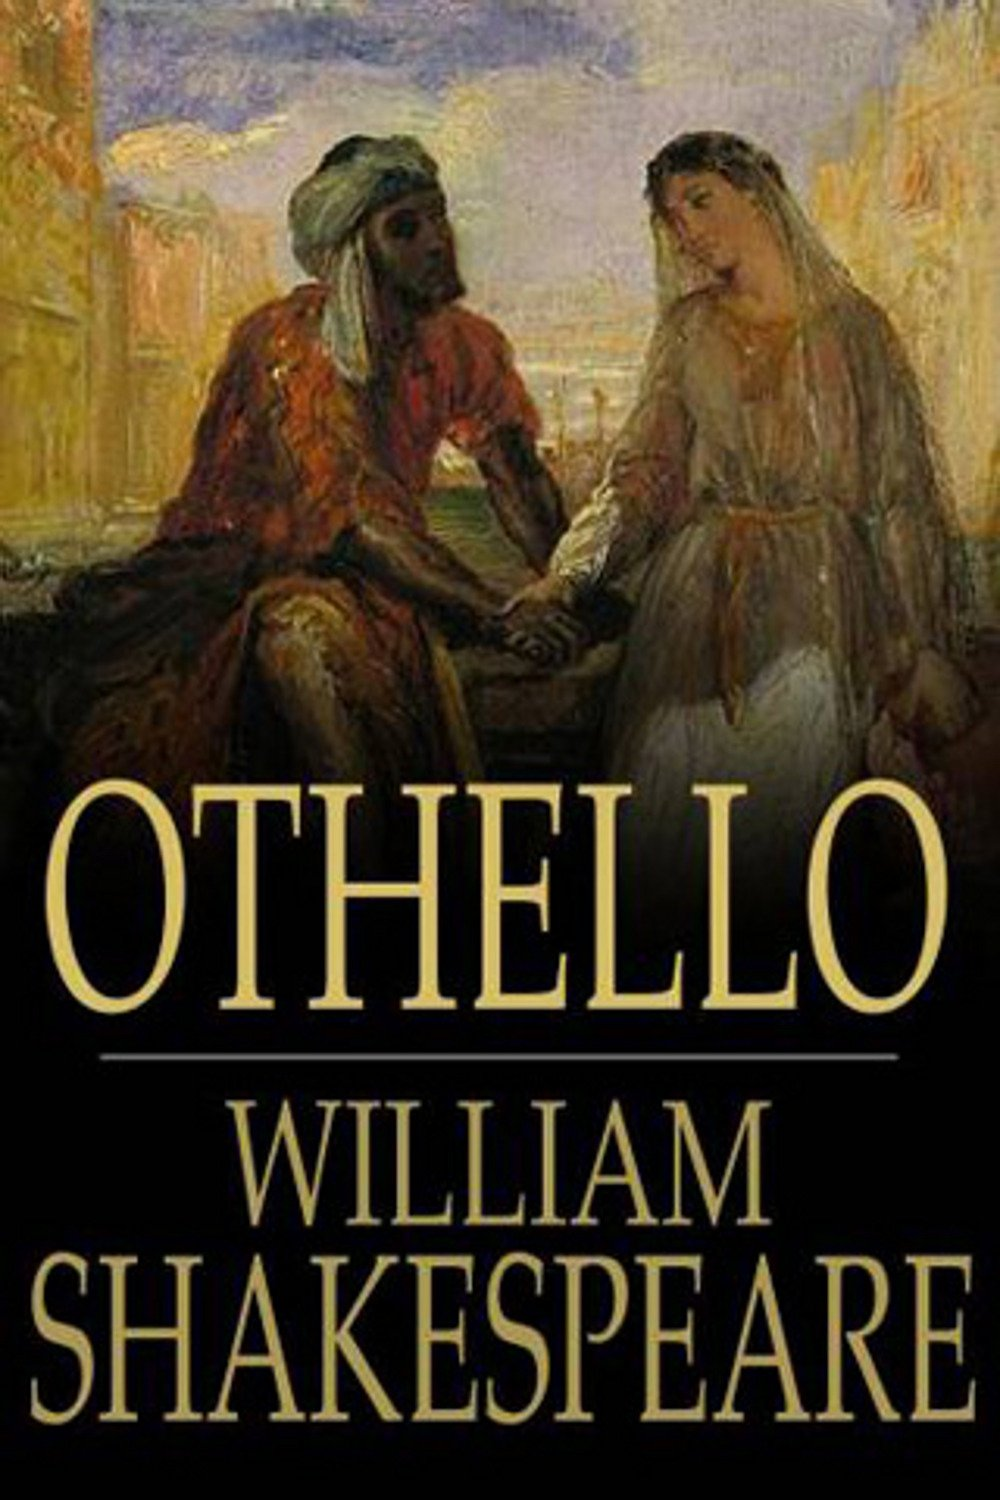 the roles of violence death and greed in the plays macbeth and othello by william shakespeare